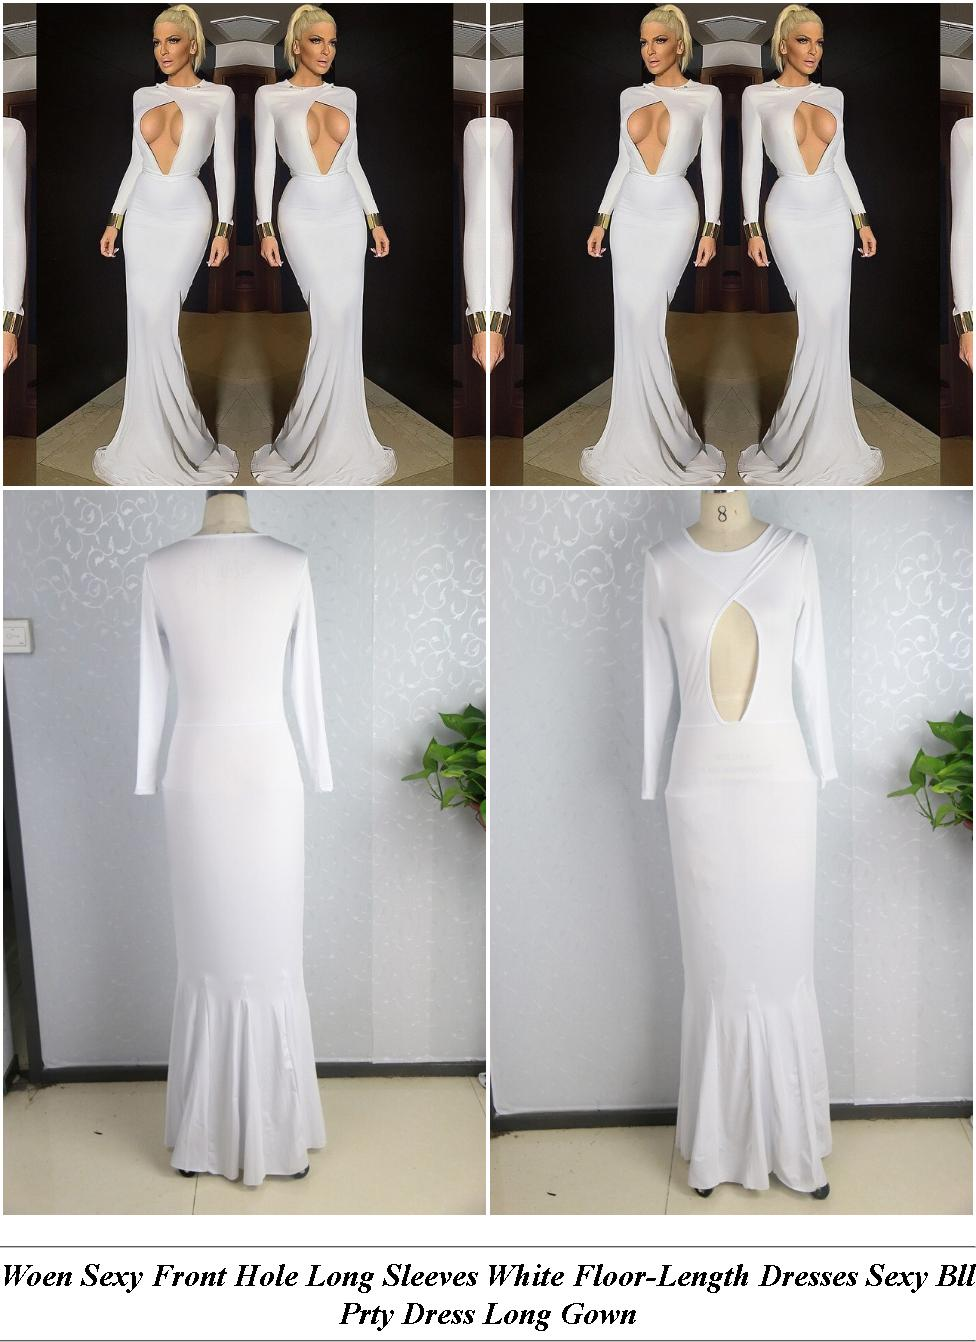 Affordale Evening Dresses Cape Town - Affordale Plus Size Clothing Sites - Wedding Dresses Vera Wang